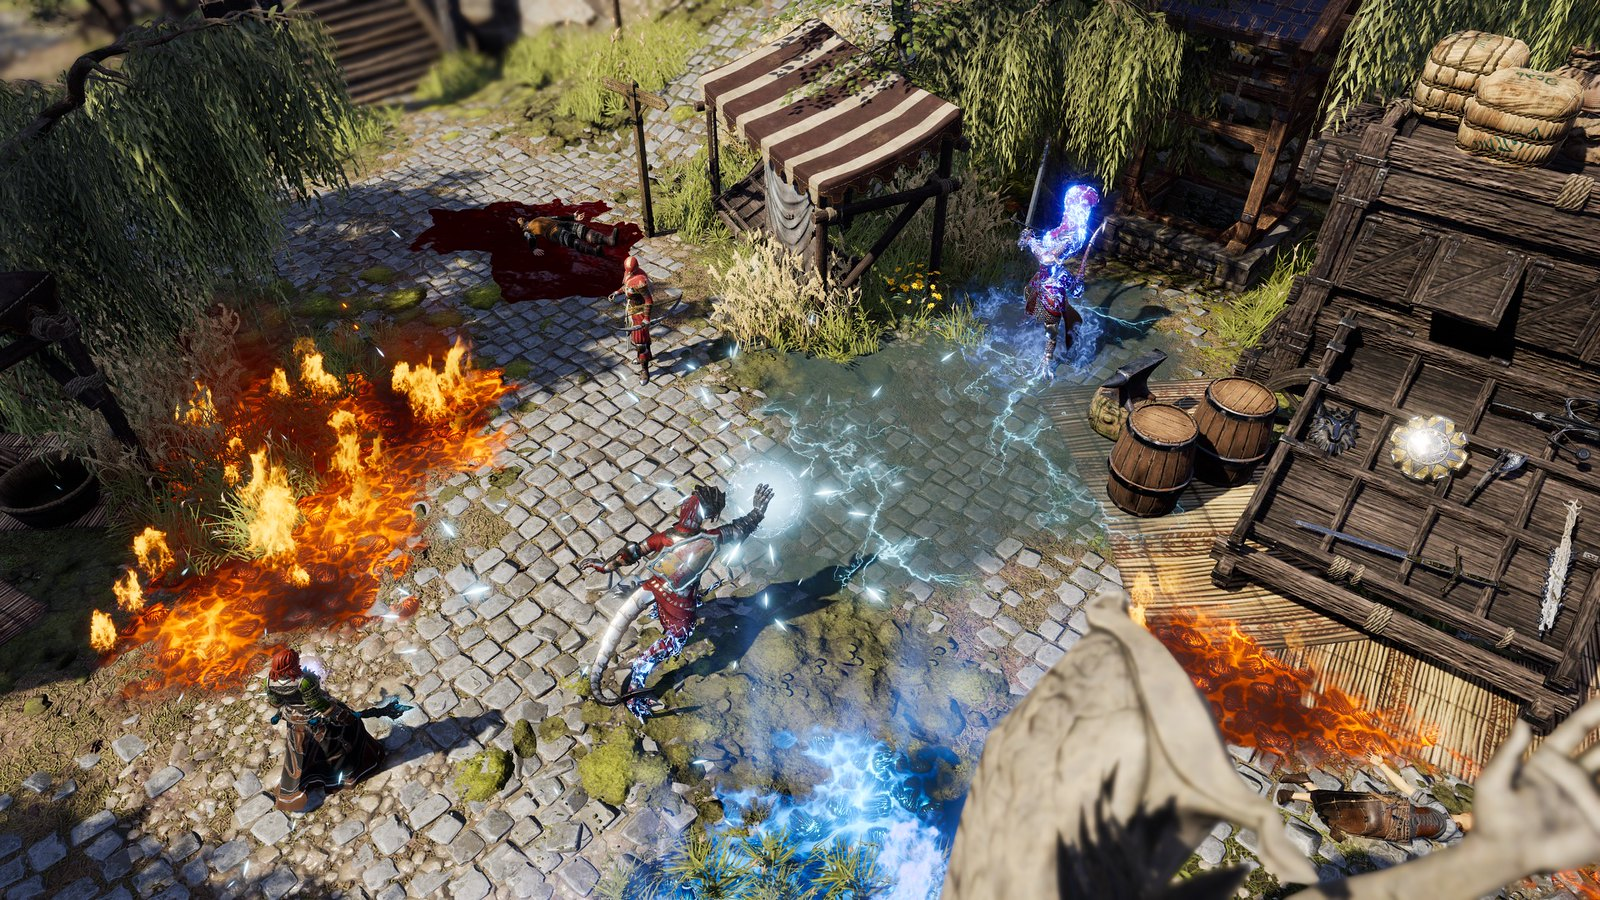 Pre-order critically-acclaimed RPG Divinity: Original Sin 2